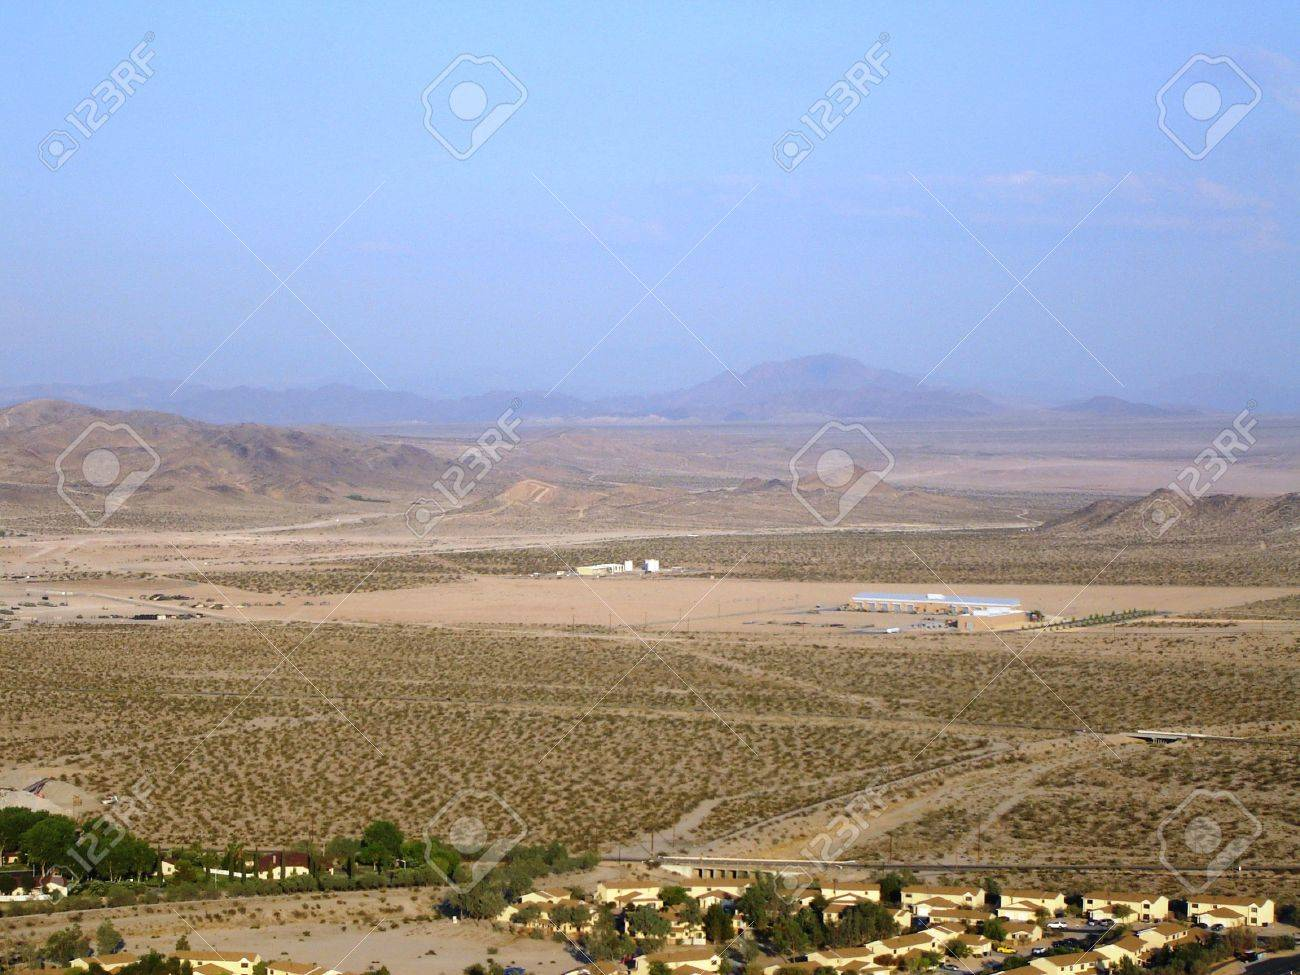 Fort Irwin Army Base - with mountain background - 8190623